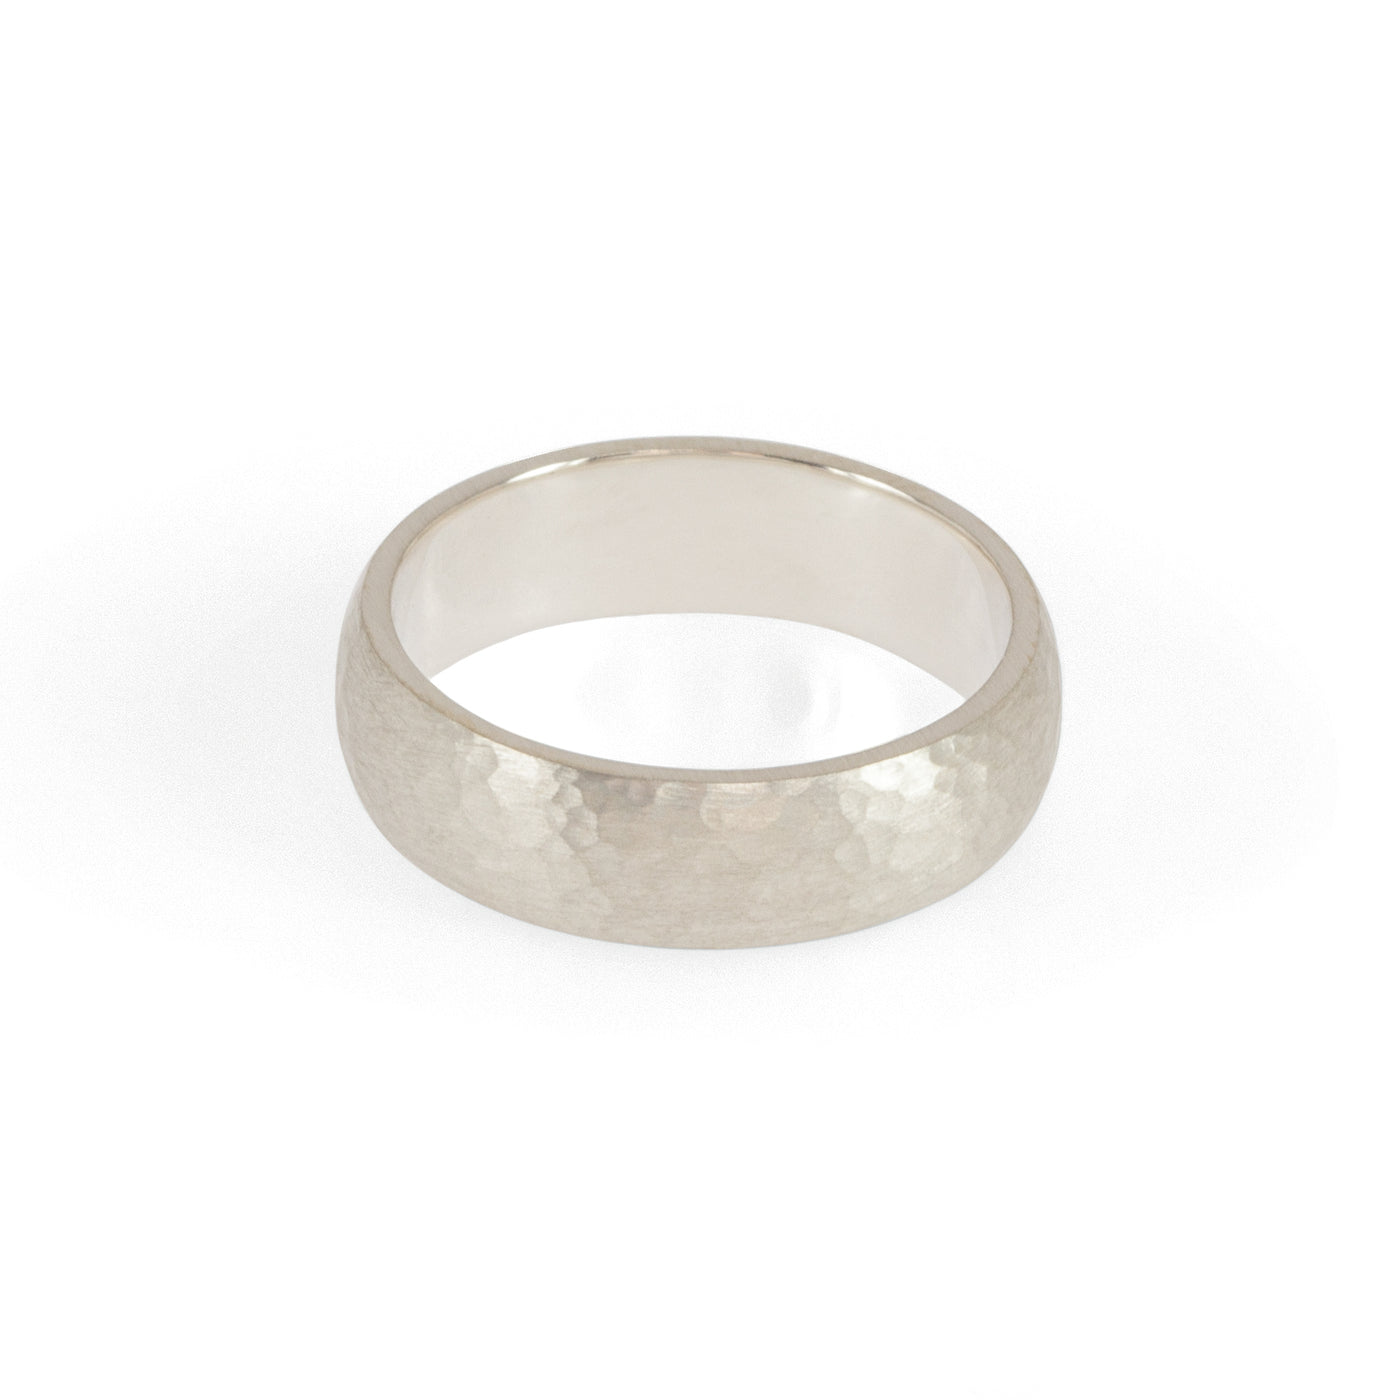 Eco-friendly silver ring. This sustainable Hammered Band is handmade in Cape Town in recycled silver from e-waste.